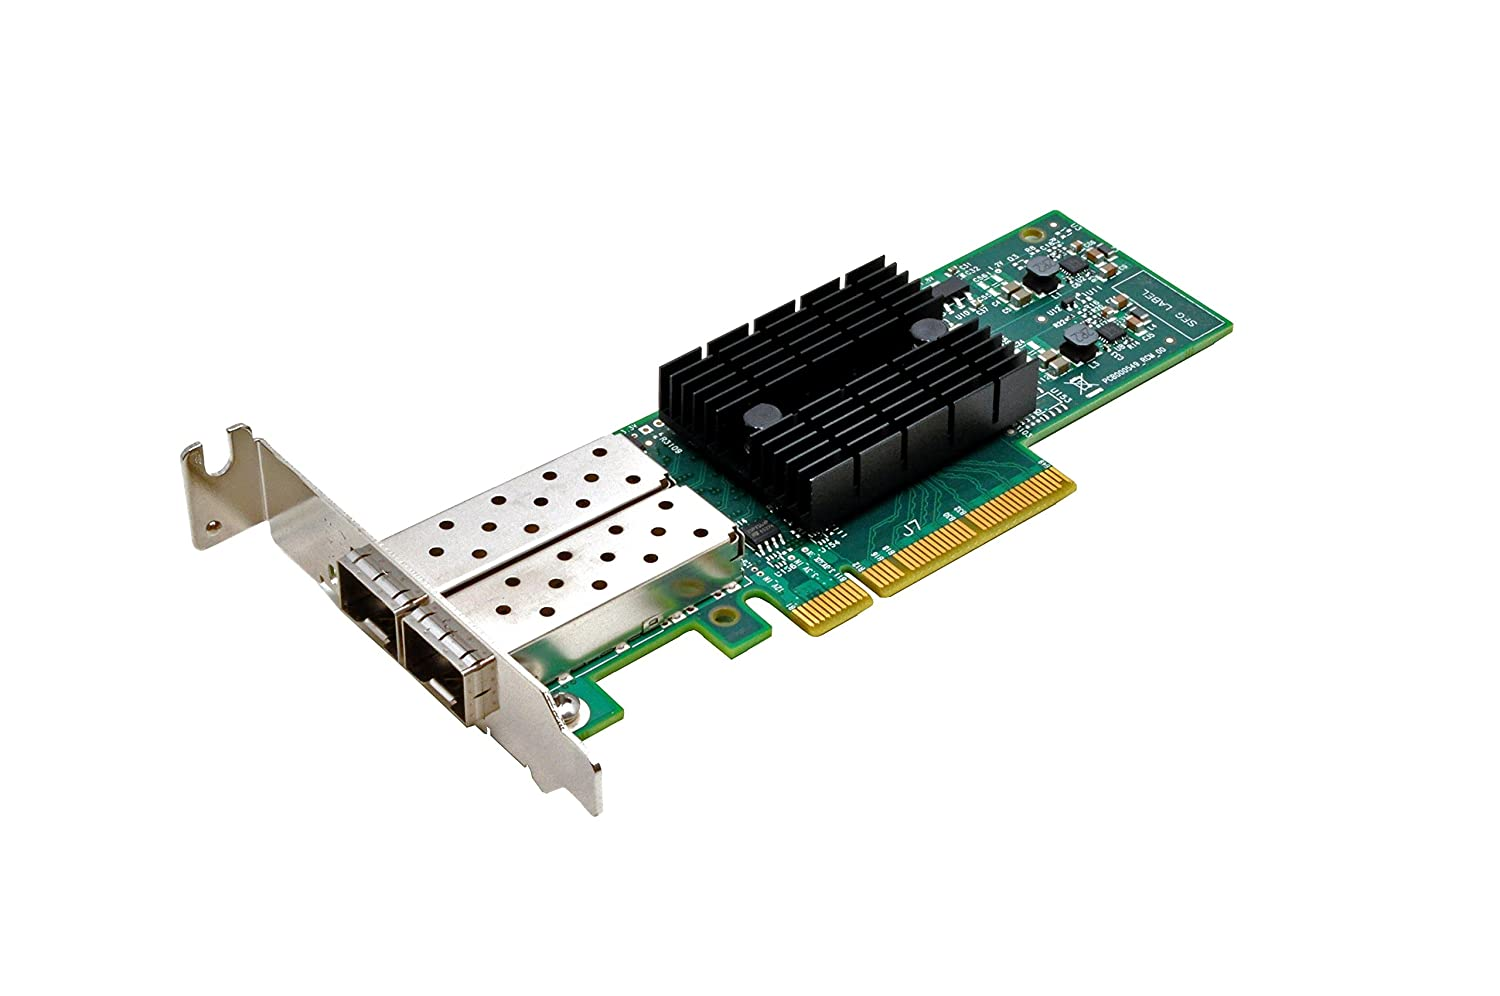 amazon co uk pcmcia cards computers accessories synology e10g17 f2 internal ethernet networking cards wired pci e ieee 802 3ad ieee 802 3ae ethernet 5 35 degc 20 60 degc